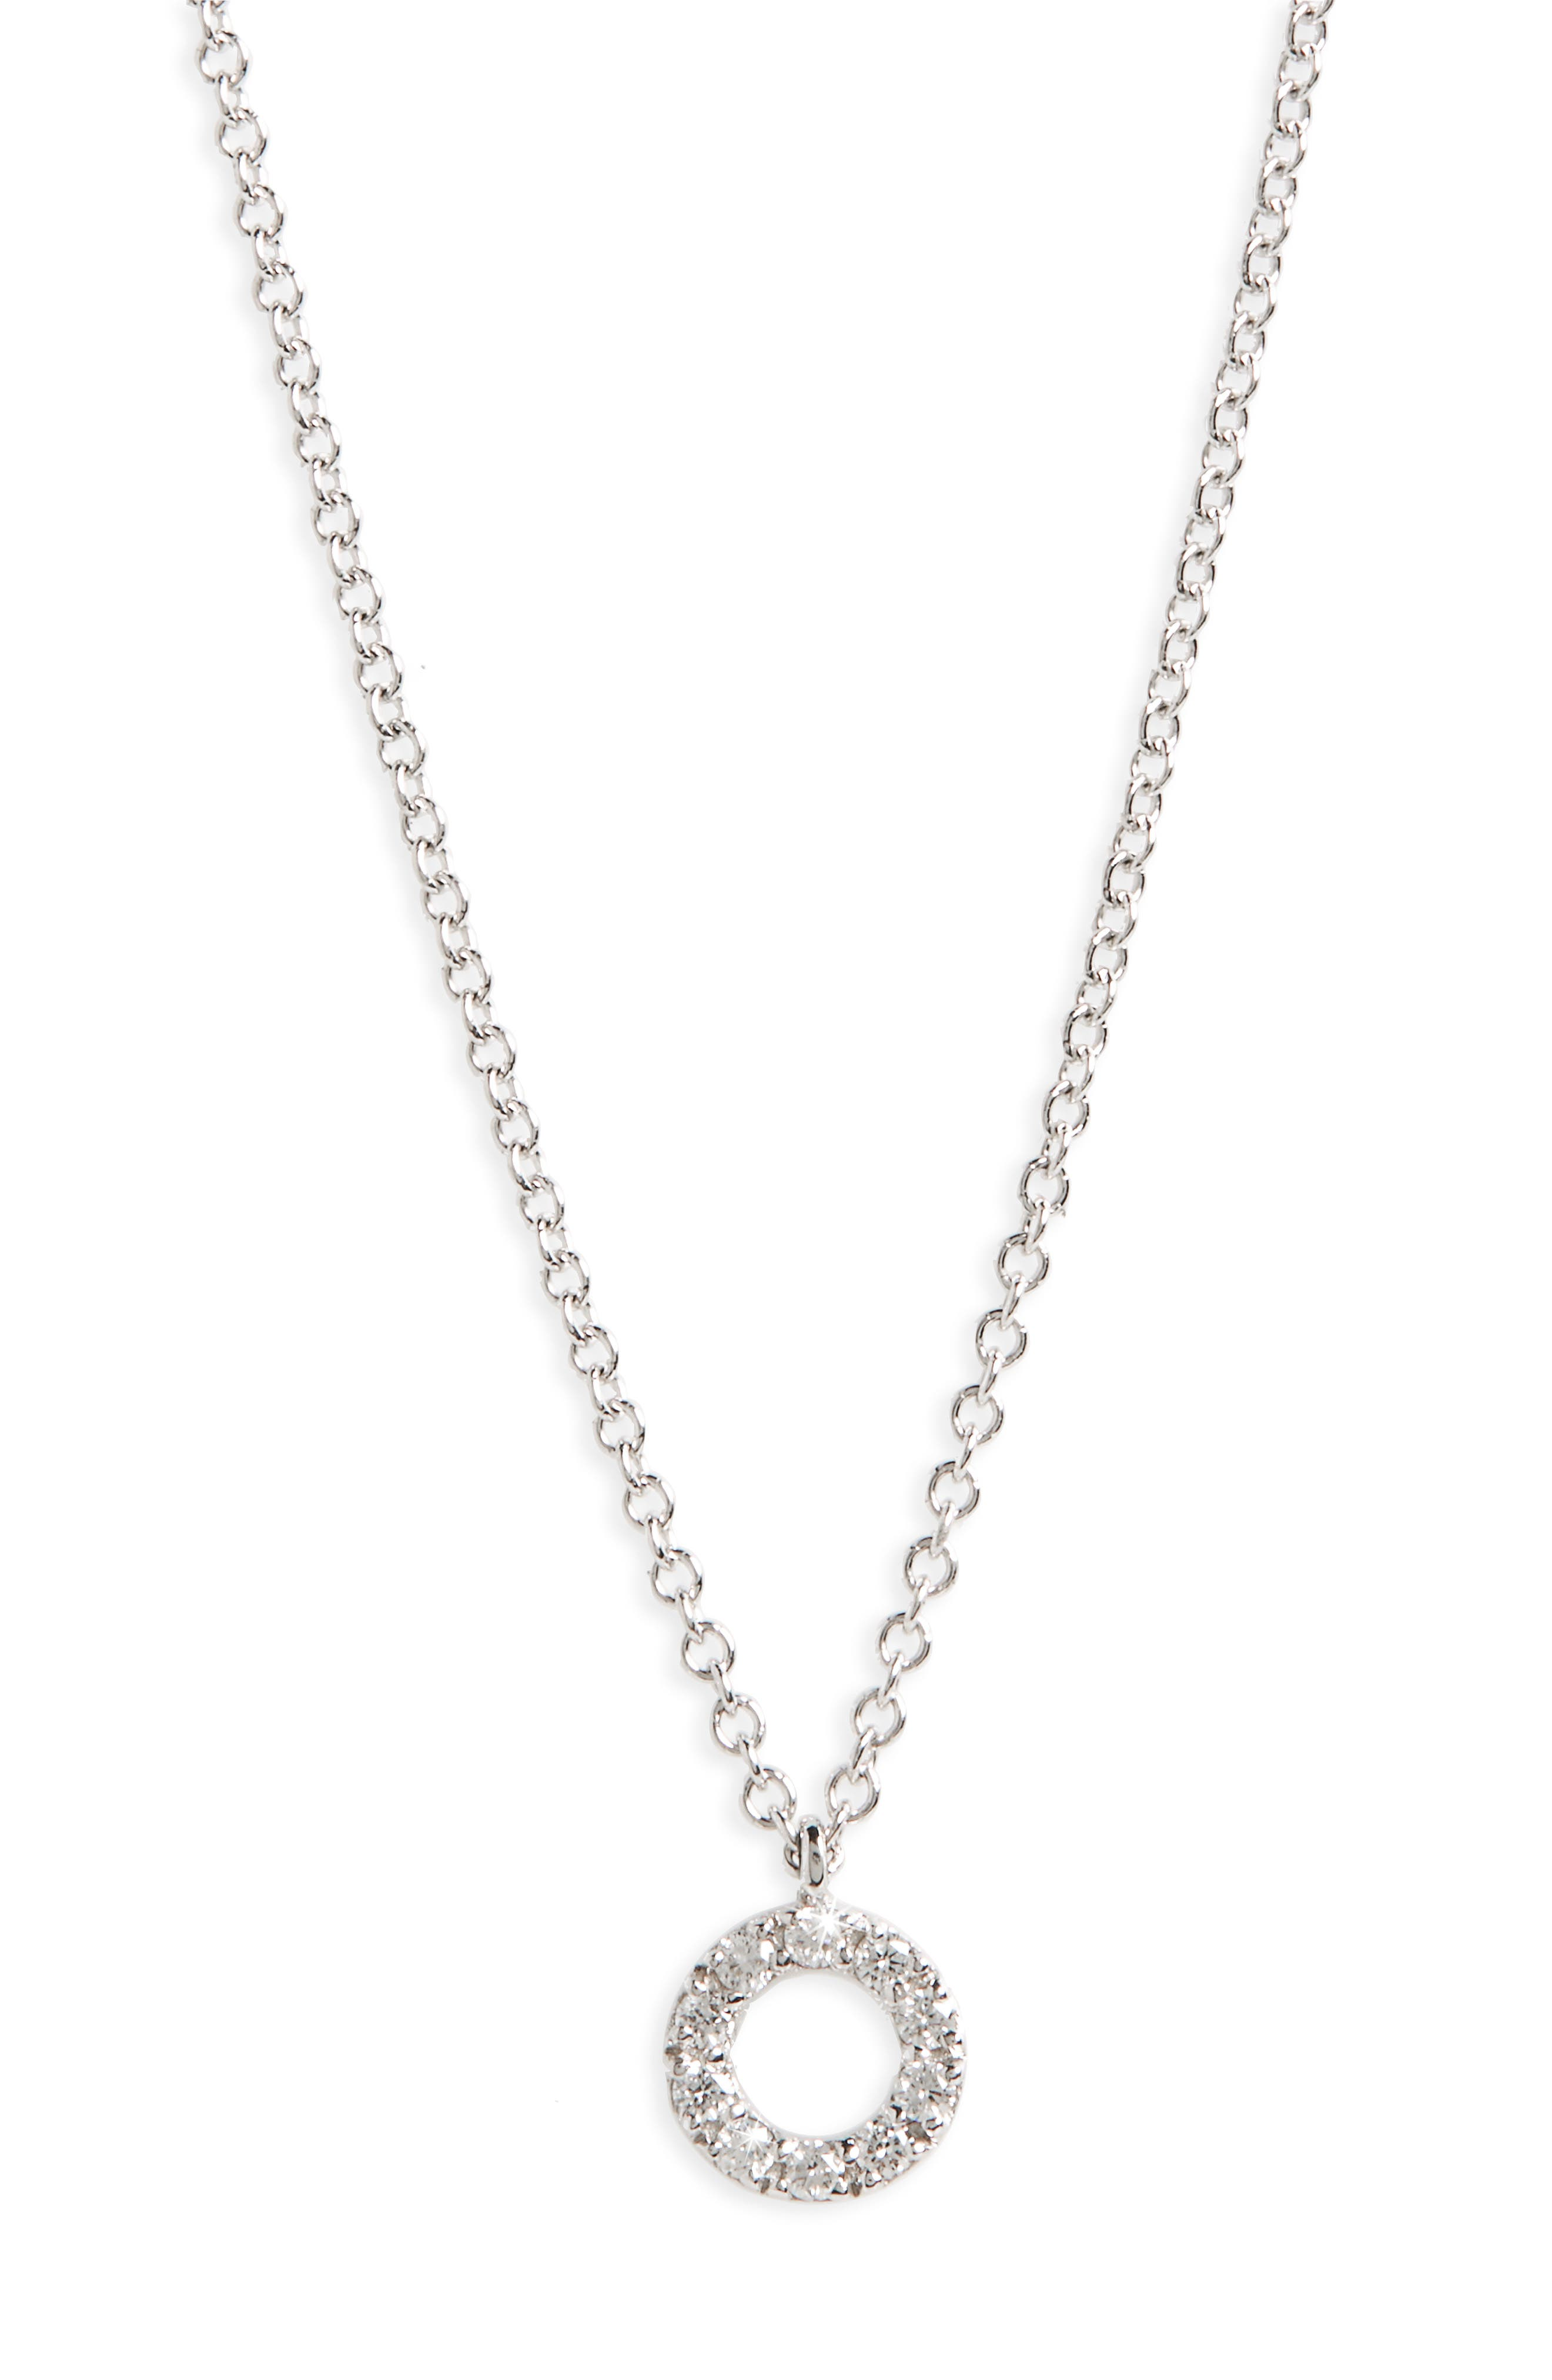 Simple Obsessions Diamond Pendant Necklace,                             Alternate thumbnail 2, color,                             White Gold